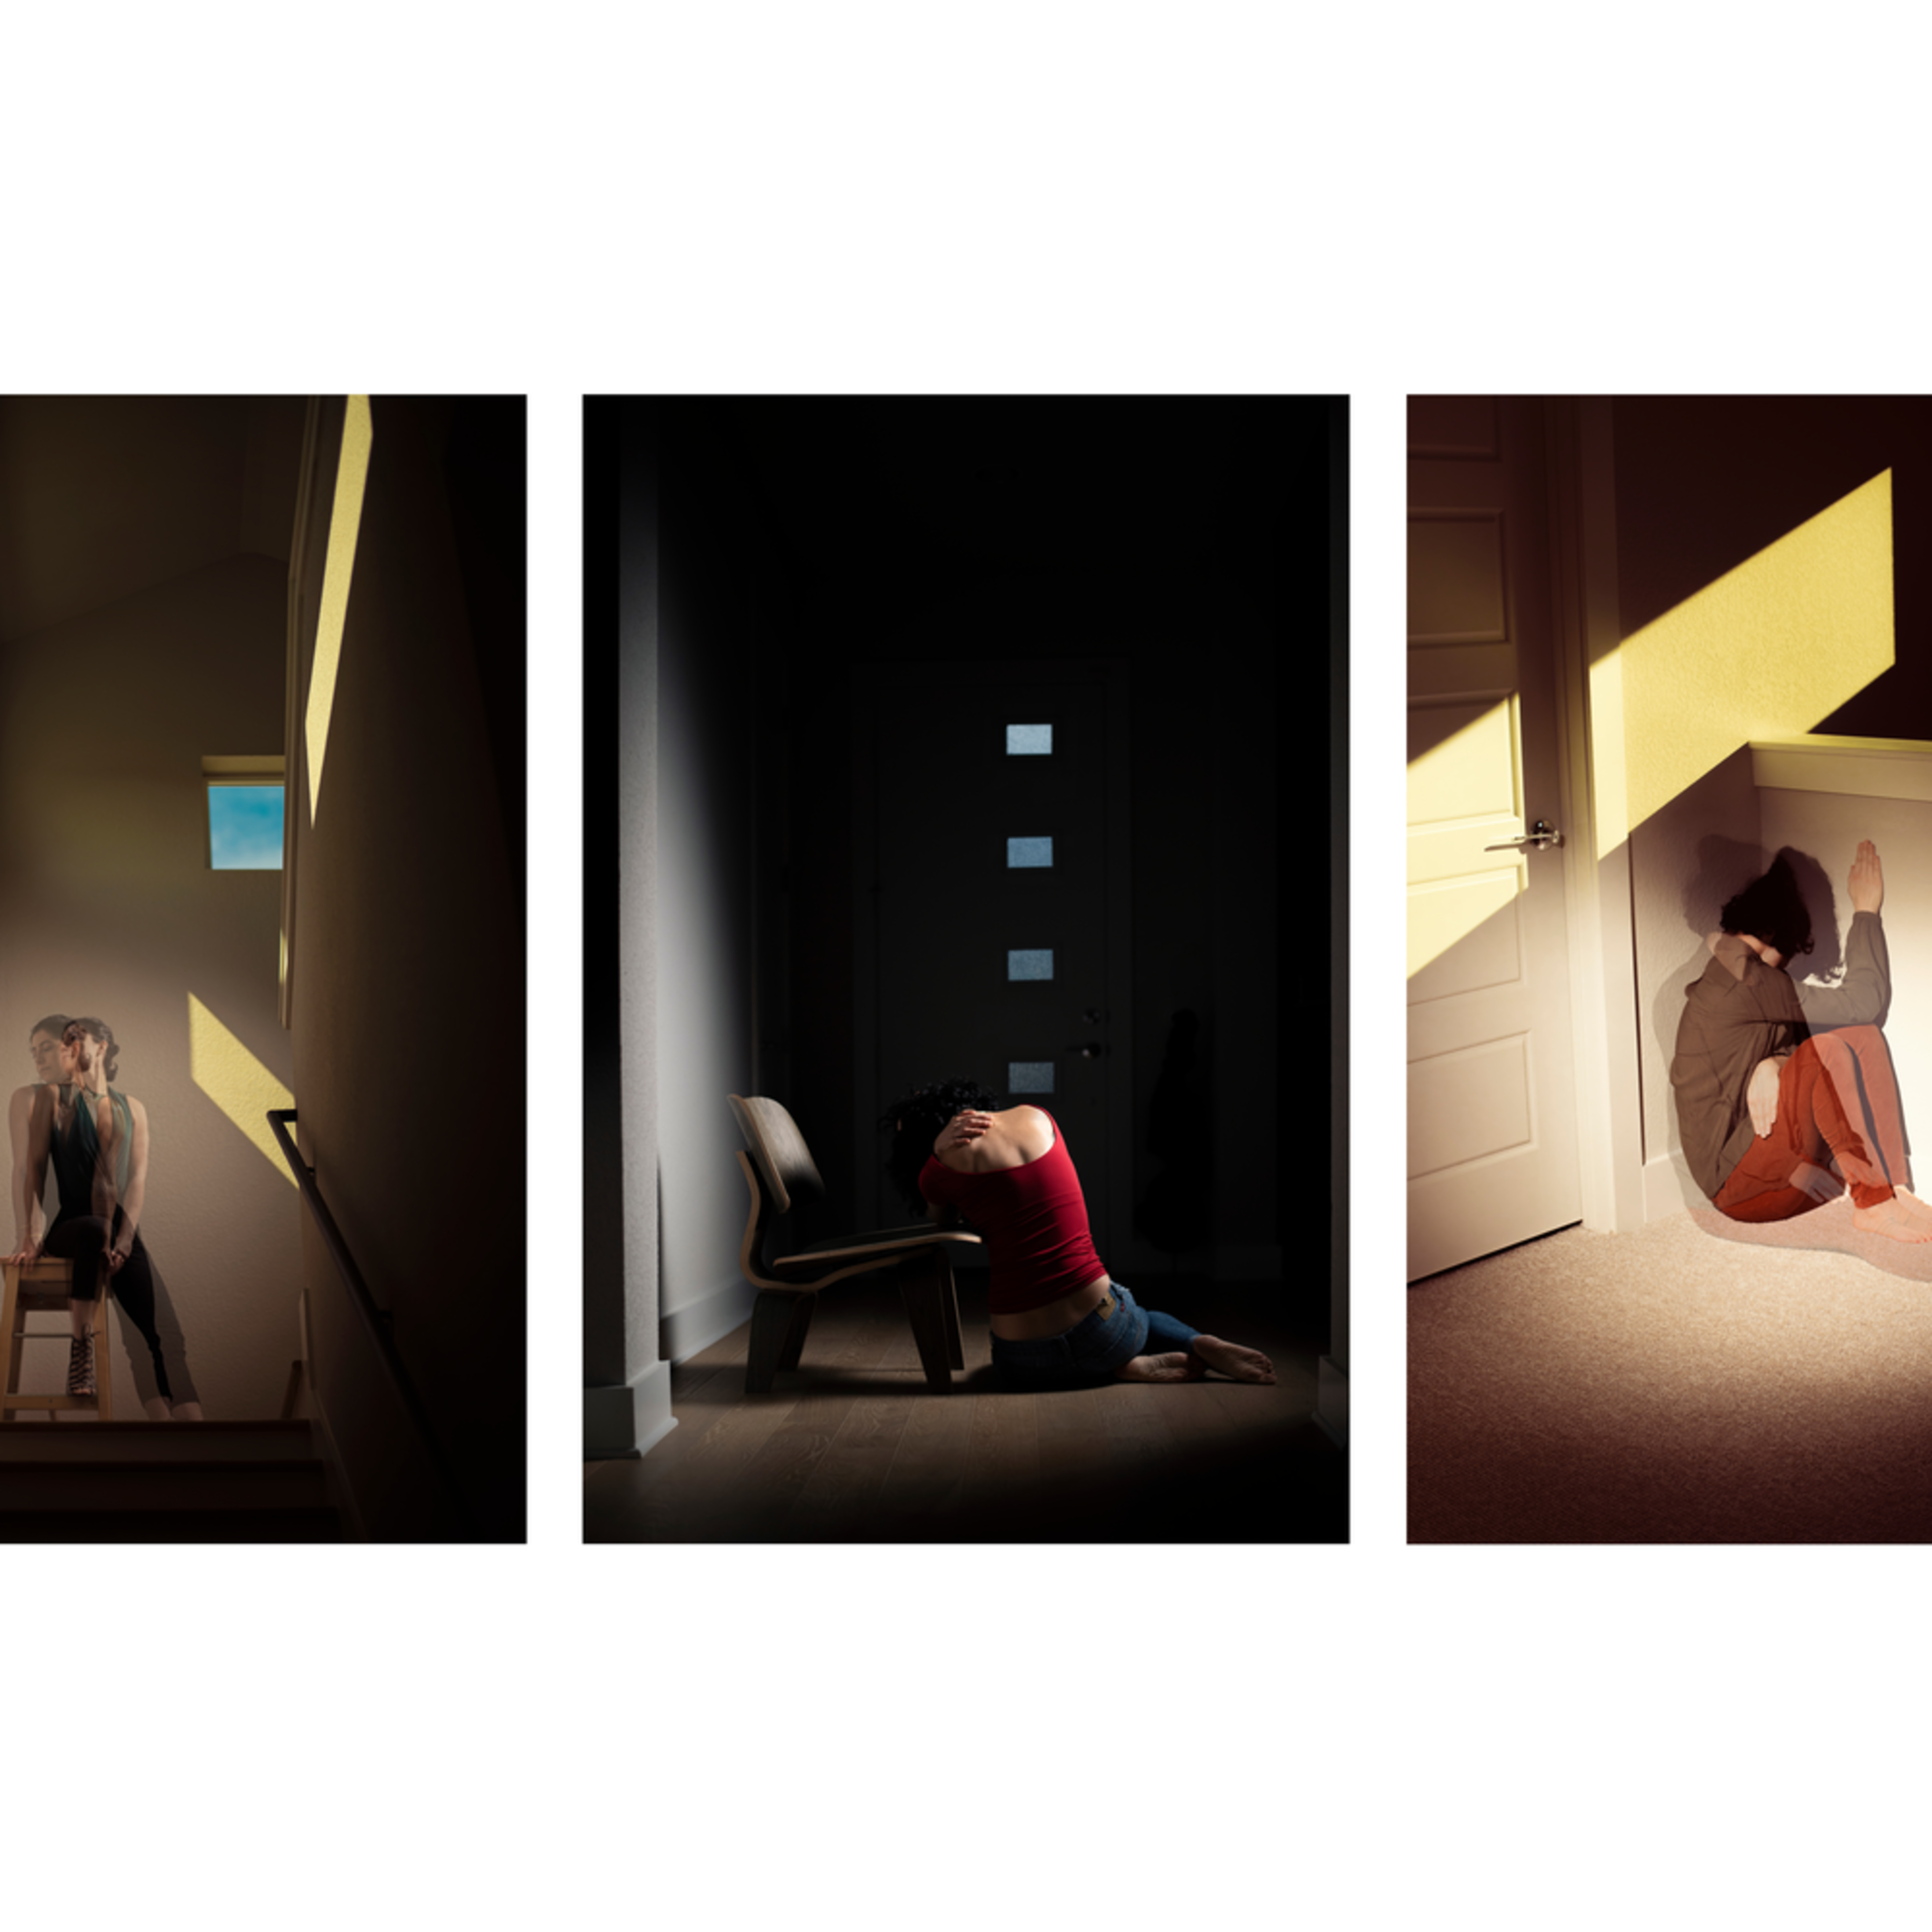 Detached triptych abstract portrait photography fine art print silvia nikolov lsmdsr